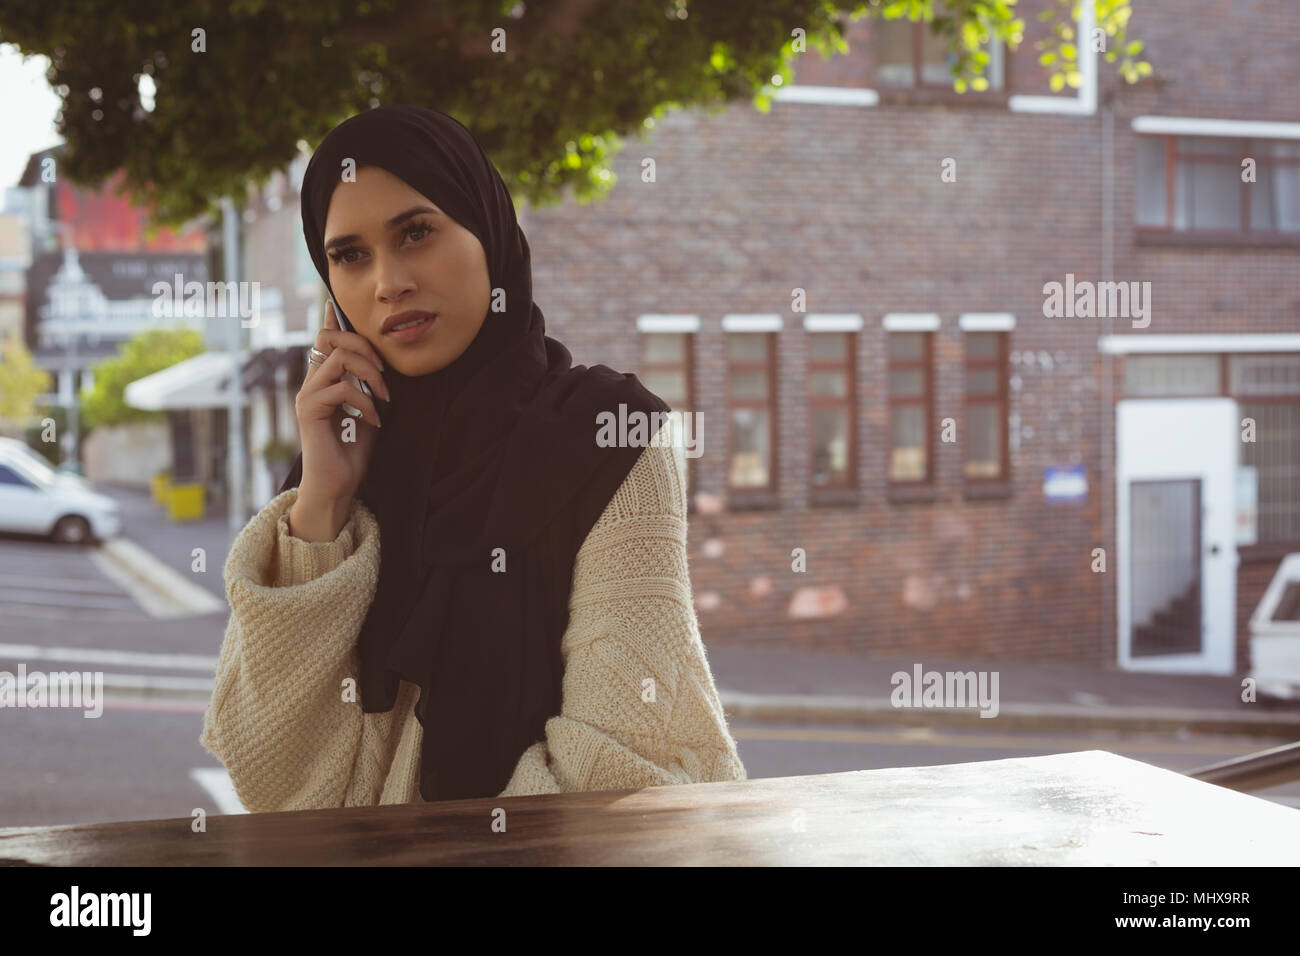 Urban hijab woman talking on mobile phone at cafe - Stock Image